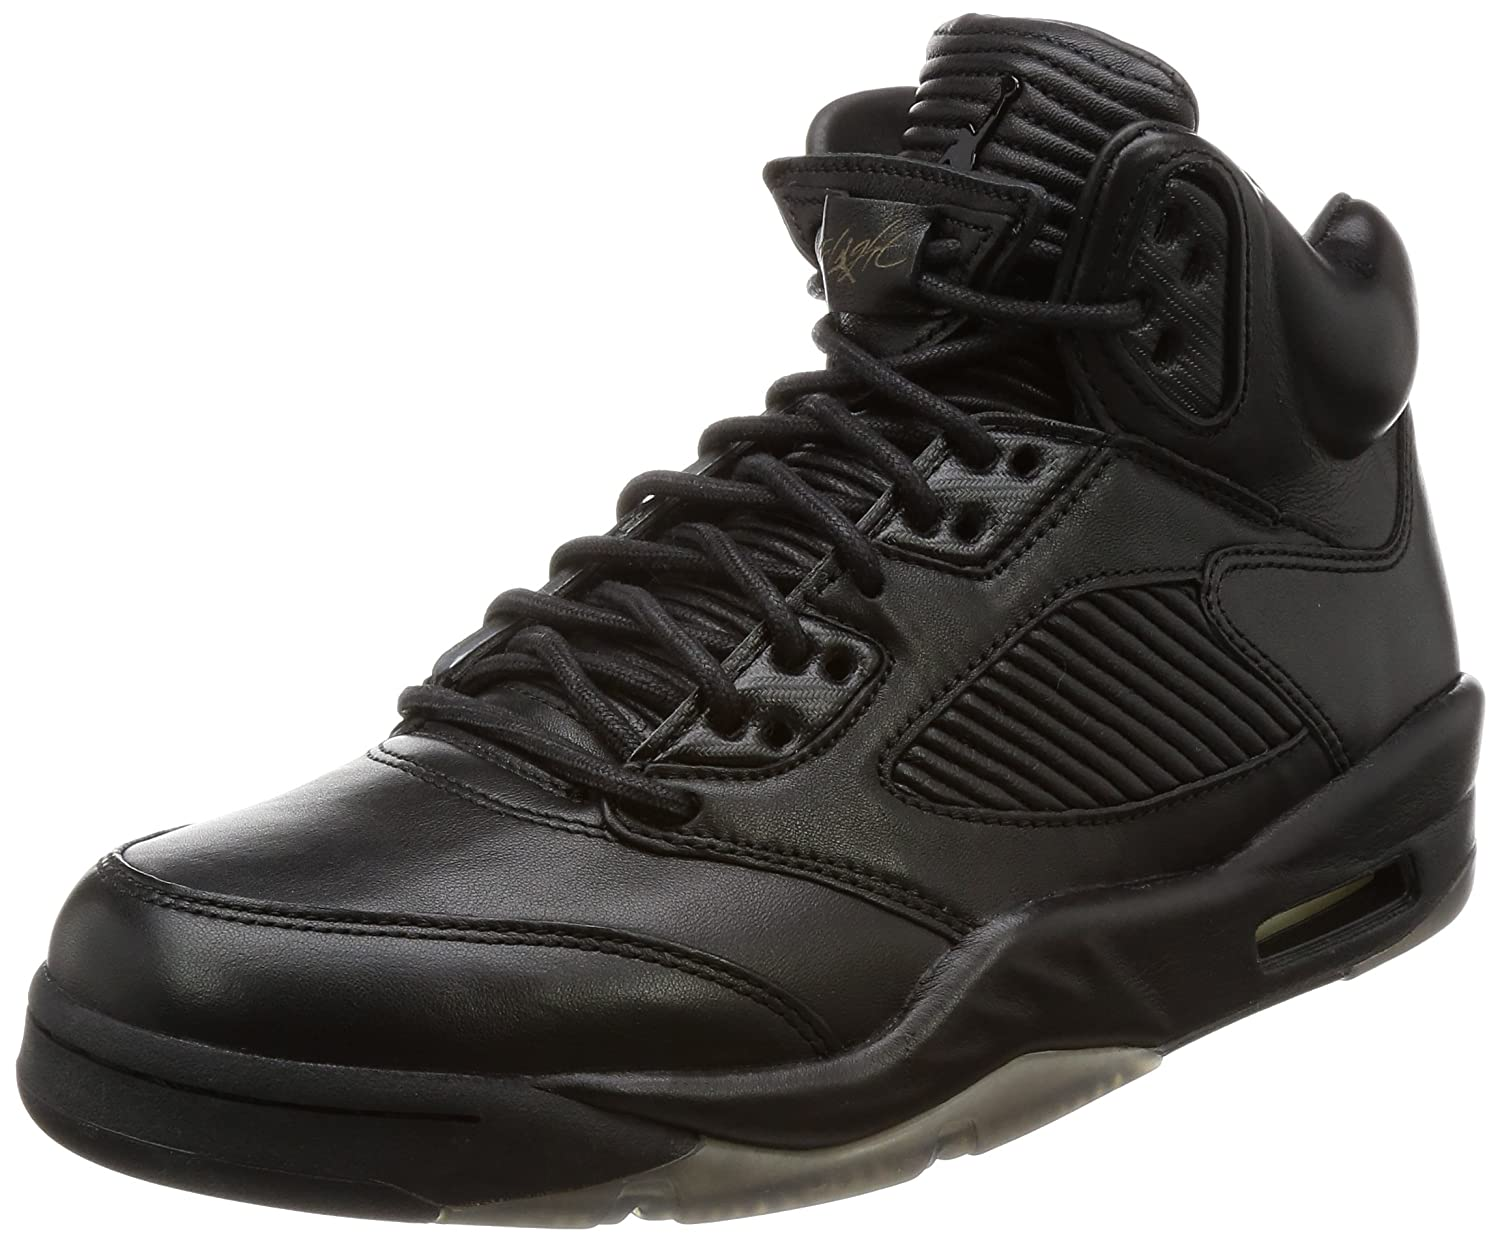 info for ca02c 0da0f Amazon.com | Nike Mens Air Jordan 5 Retro Premium Noir/Noir ...